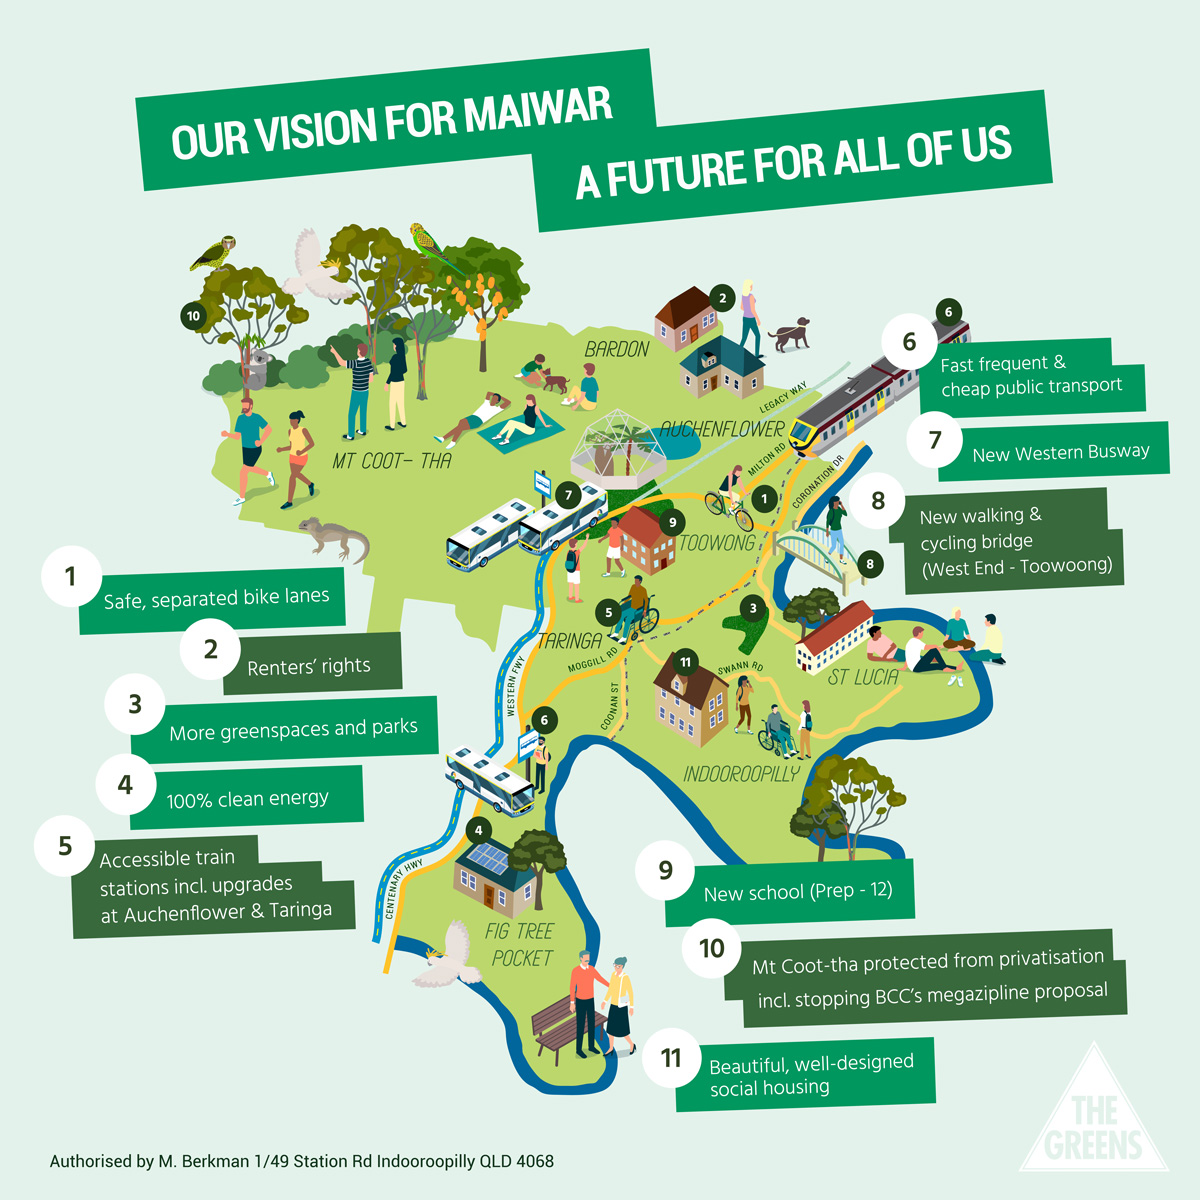 Map articulating our vision for Maiwar